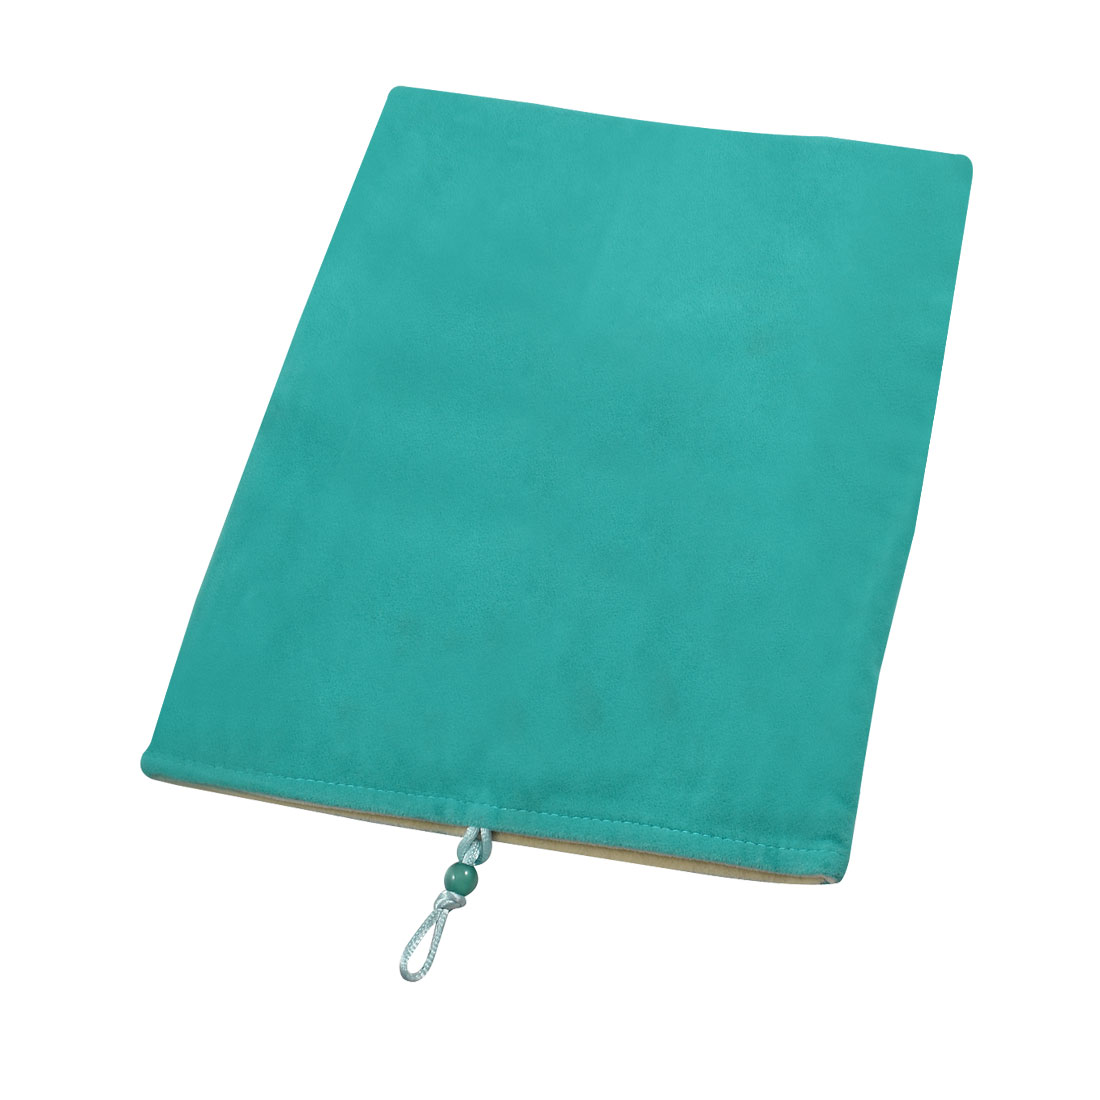 "Turquoise Flannel Rectangle Shaped Pouch Case for 9.7"" 10"" Tablet PC"